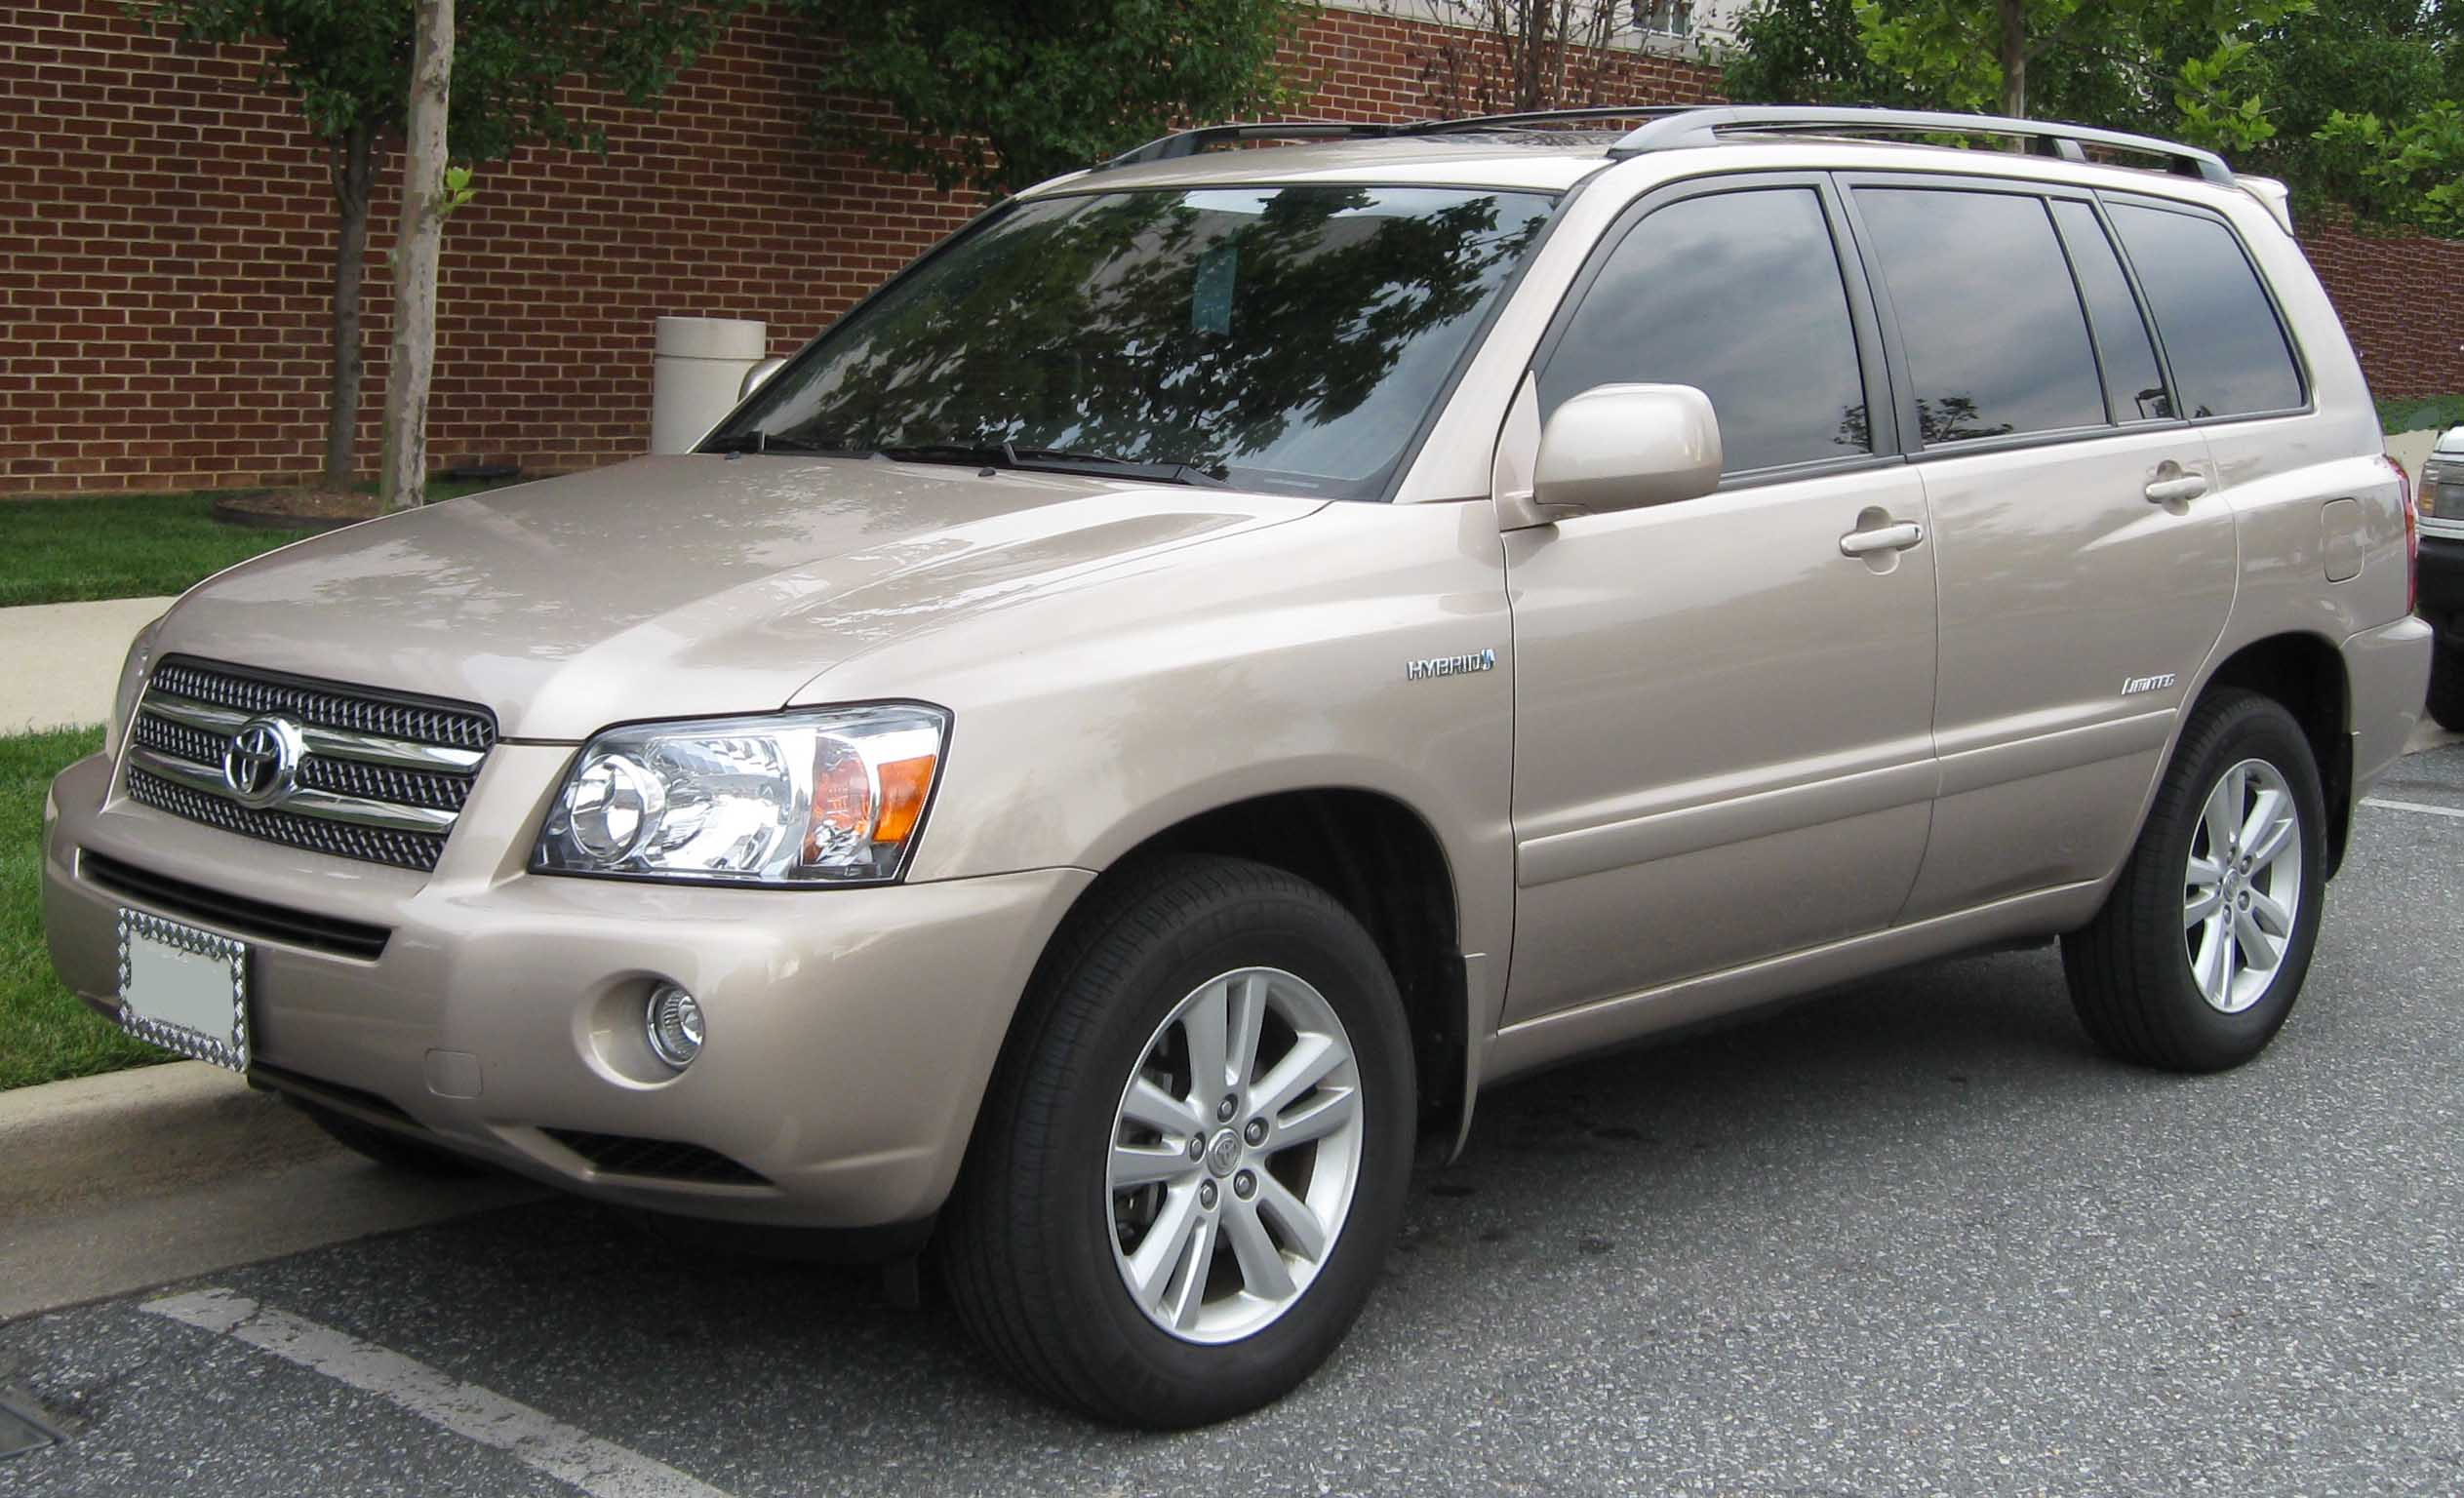 3004 2006 Toyota Highlander 10 as well Toyota furthermore 3004 2006 Toyota Highlander 6 together with Wallpaper 08 together with Wallpaper 1a. on toyota highlander